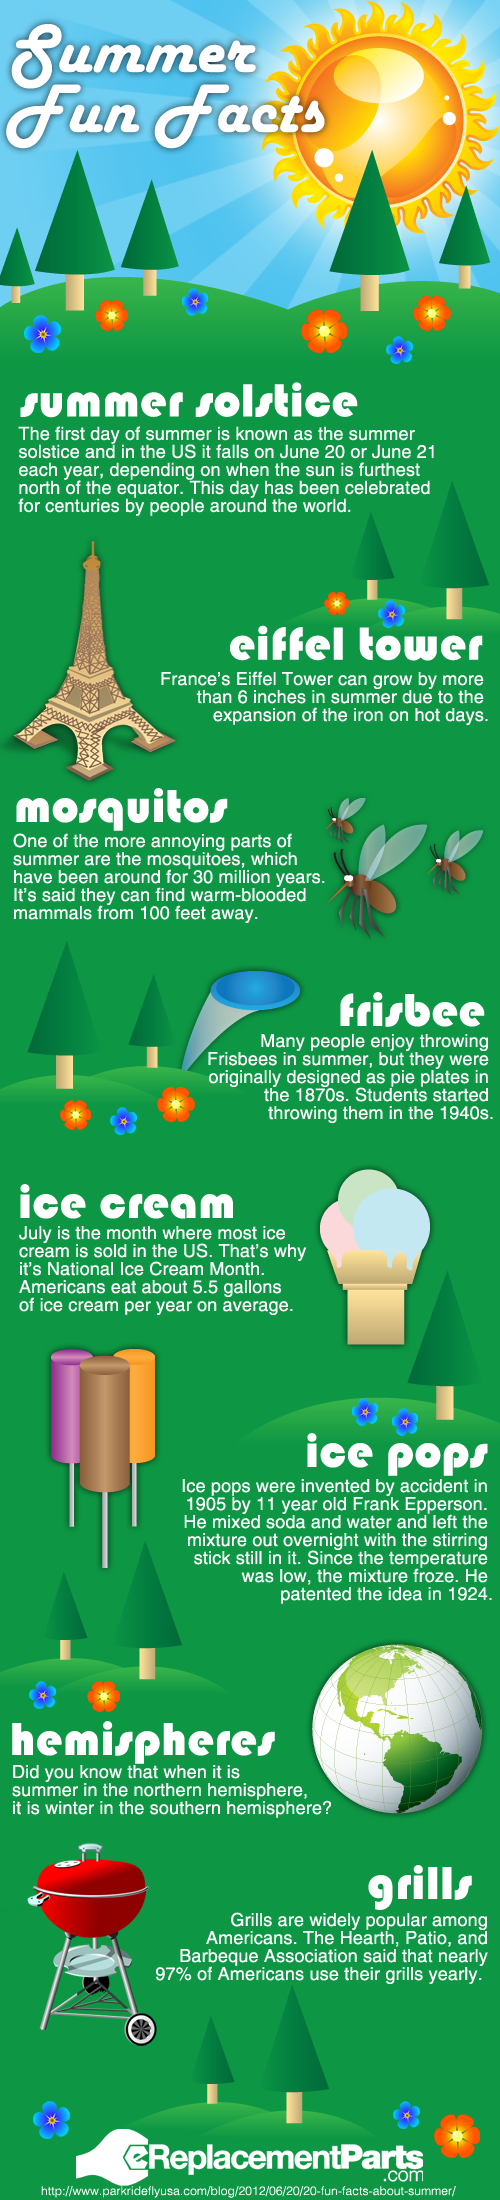 summer-fun-facts